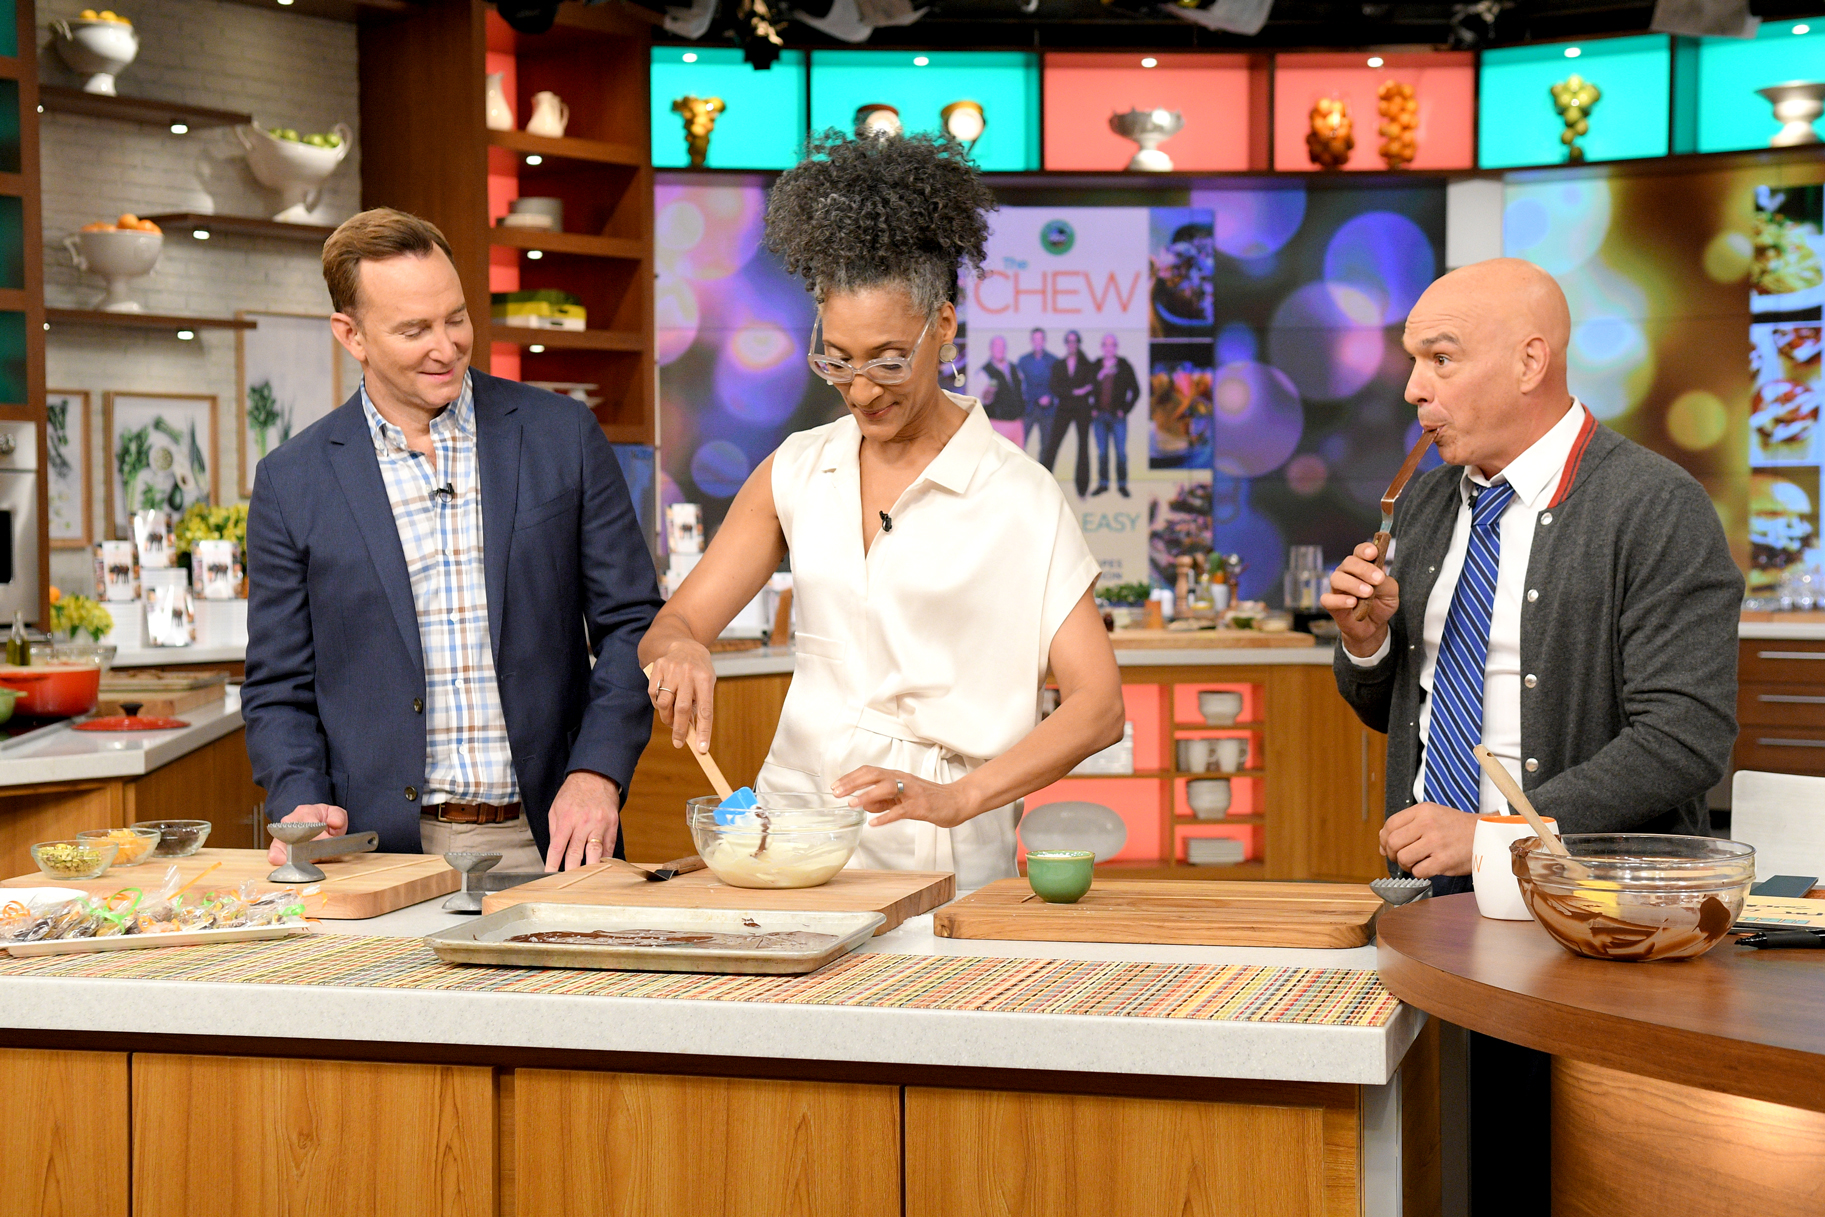 The Chew Hosts: Carla Hall, Clinton Kelly, Michael Symon